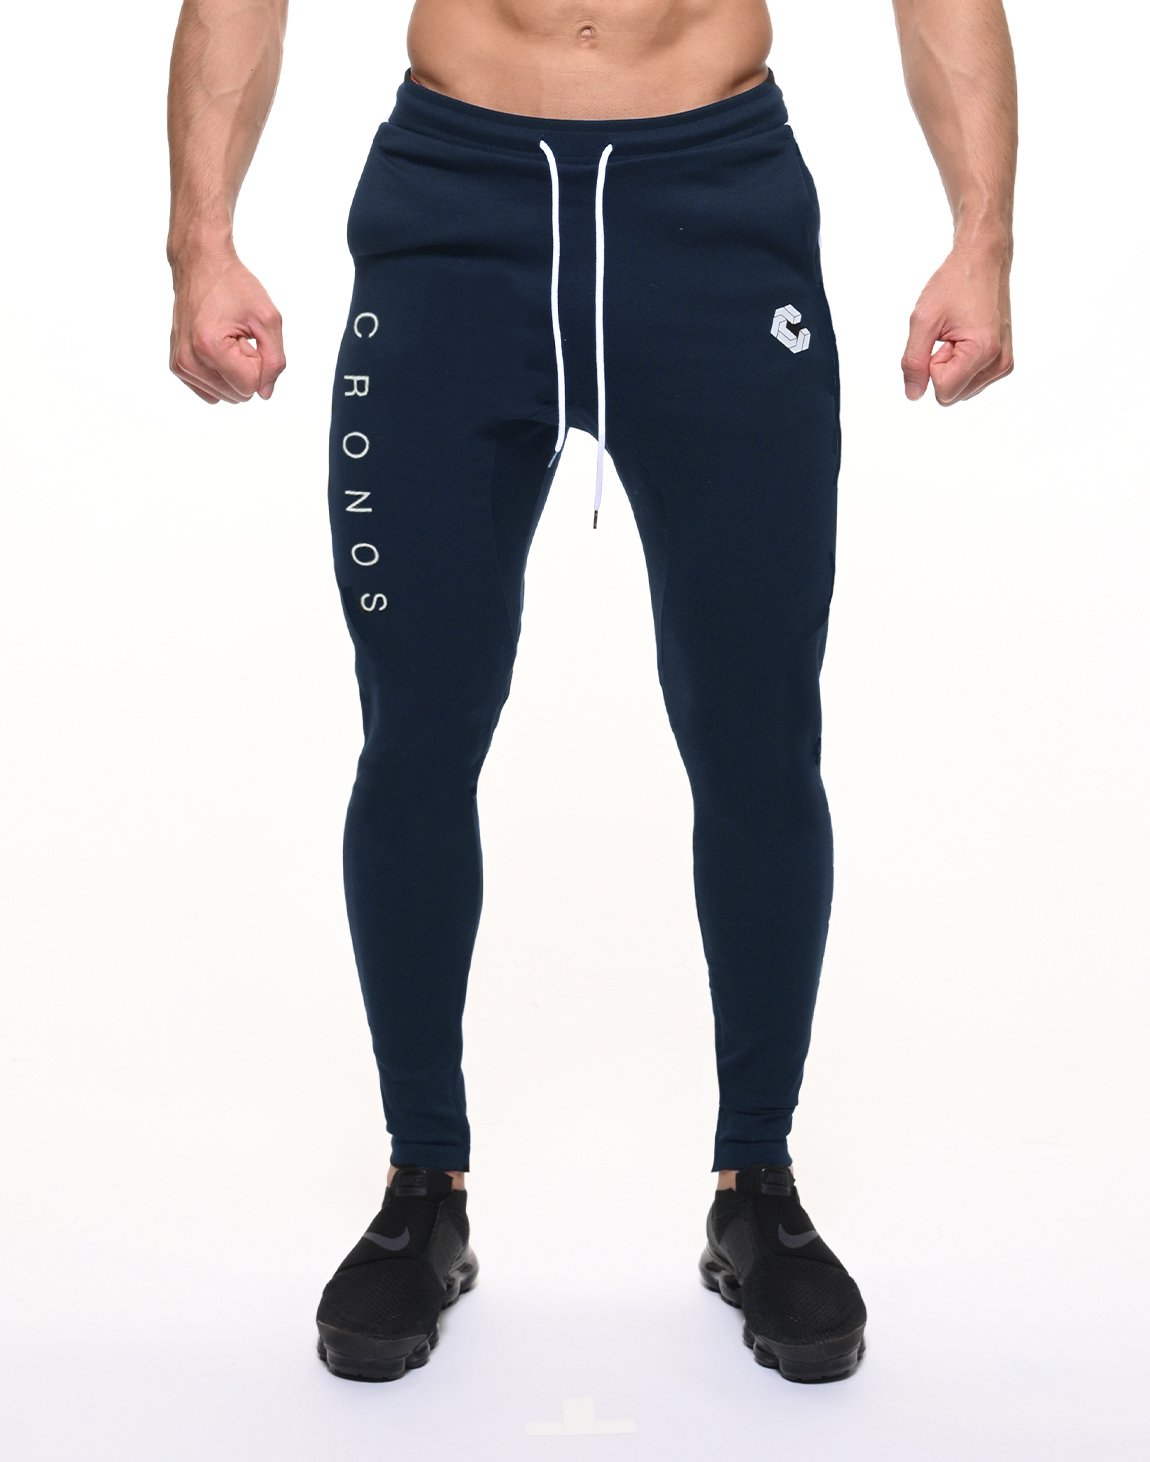 <img class='new_mark_img1' src='https://img.shop-pro.jp/img/new/icons1.gif' style='border:none;display:inline;margin:0px;padding:0px;width:auto;' />CRONOS SIDE FONT PANTS【NAVY】